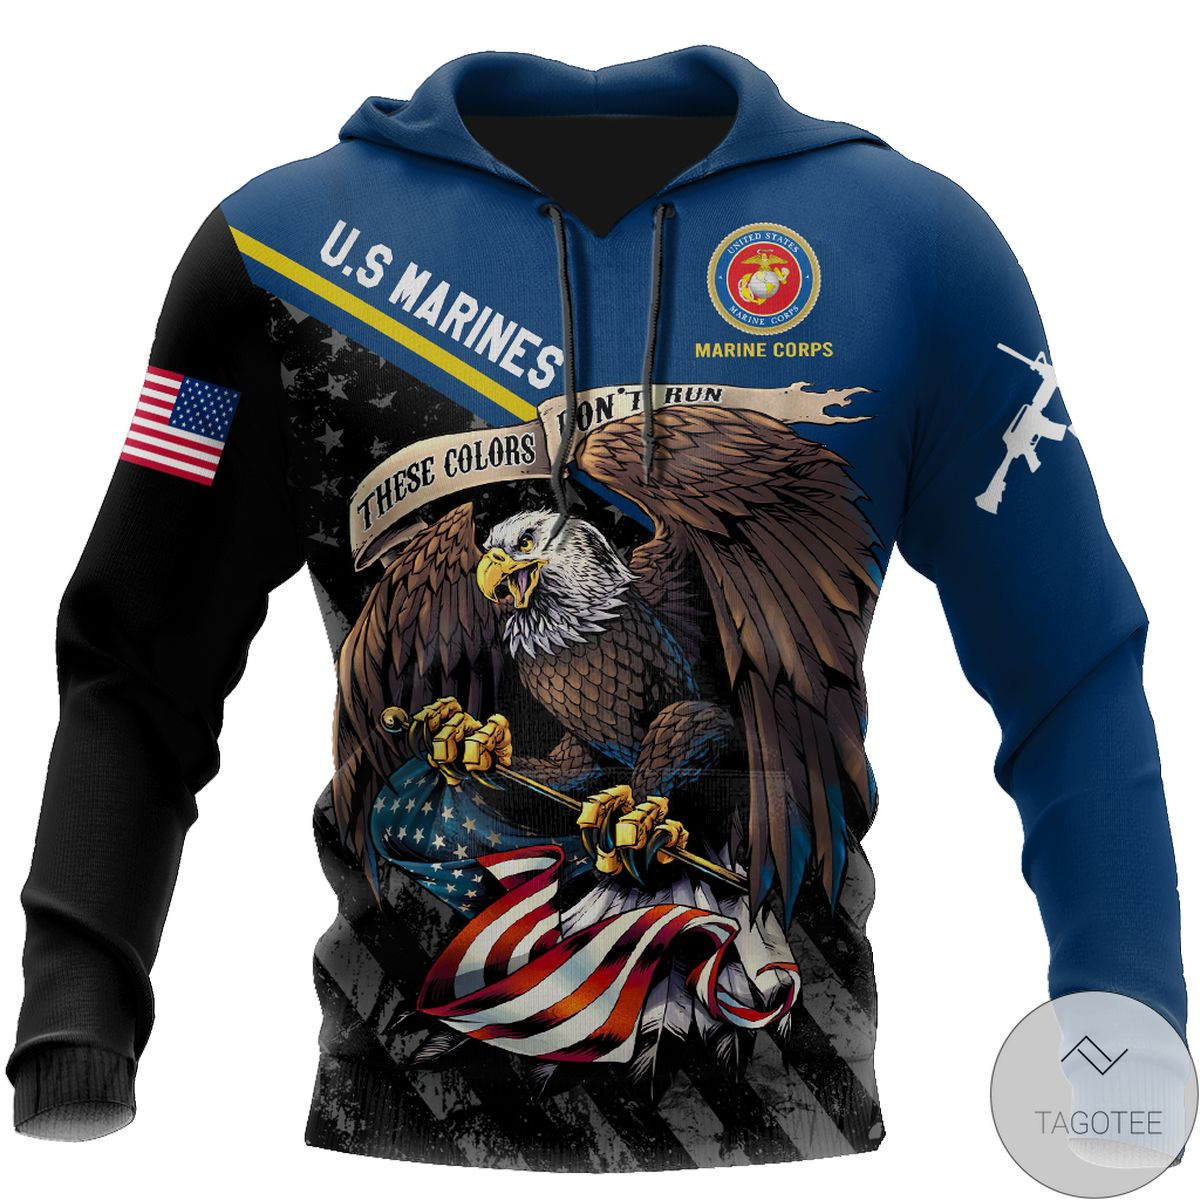 Fast Shipping Us Veteran Marine Corps 3D All Over Print Hoodie